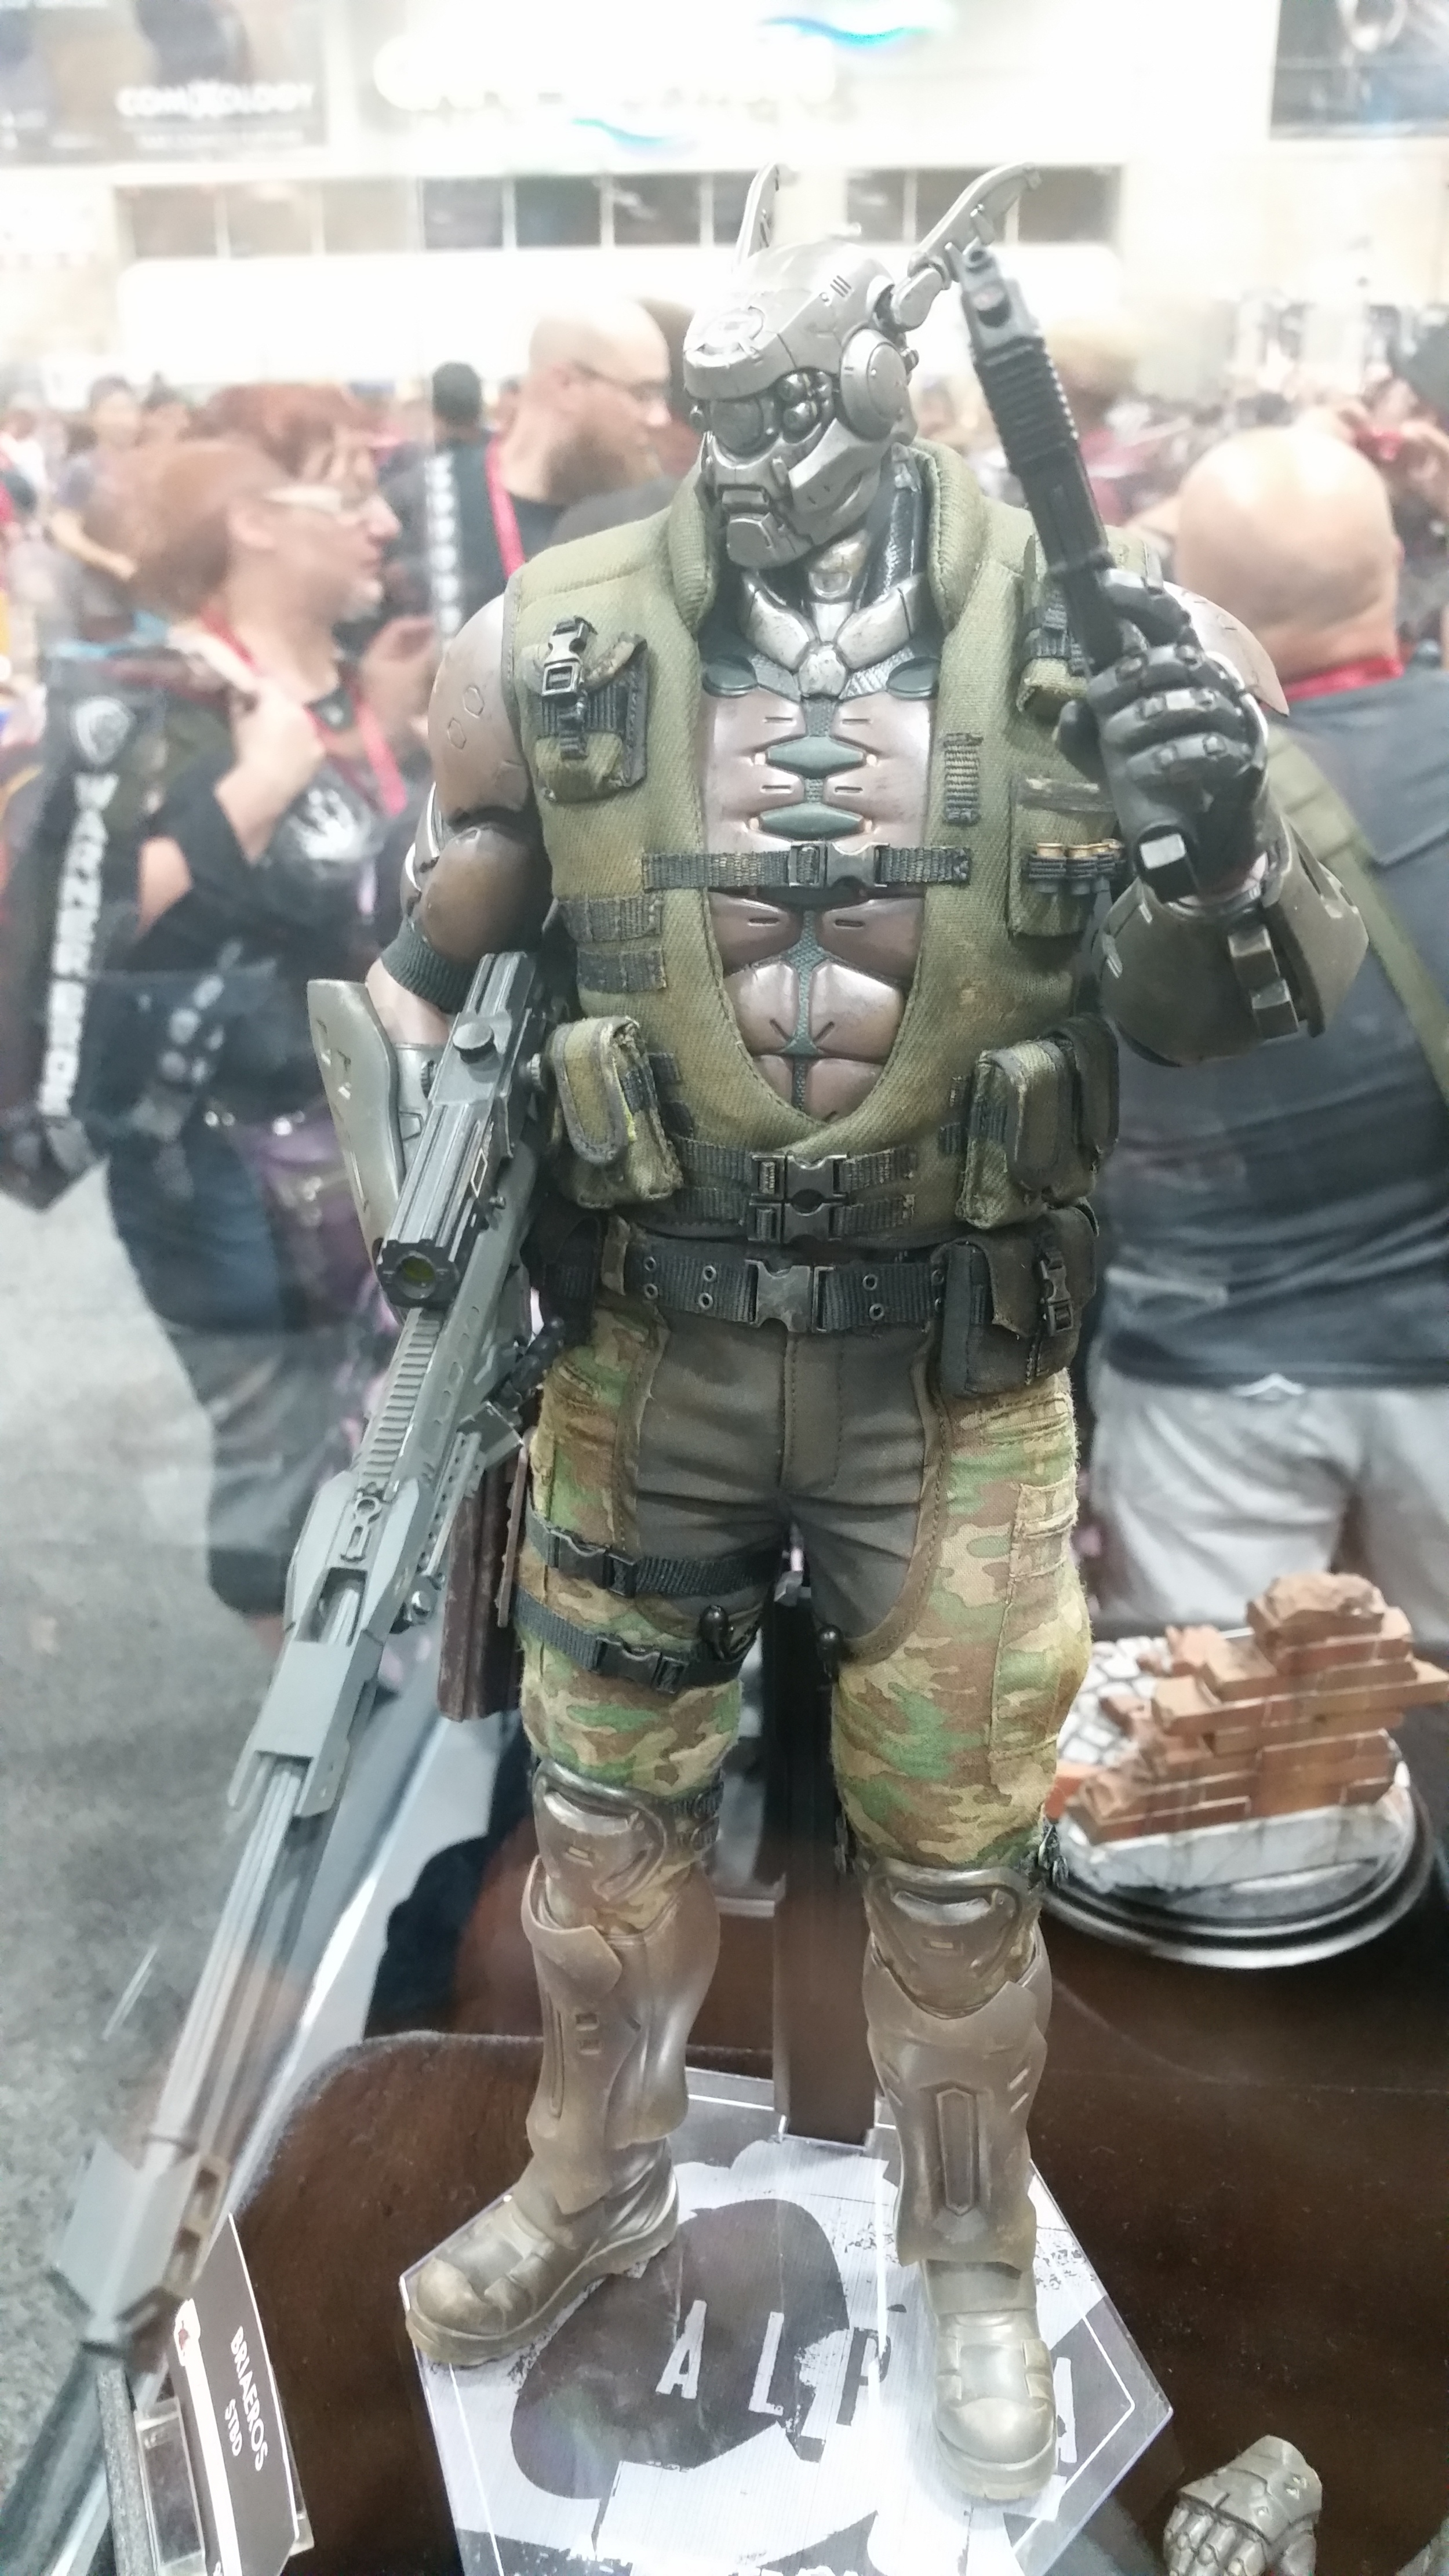 Briareus from Appleseed  Alpha